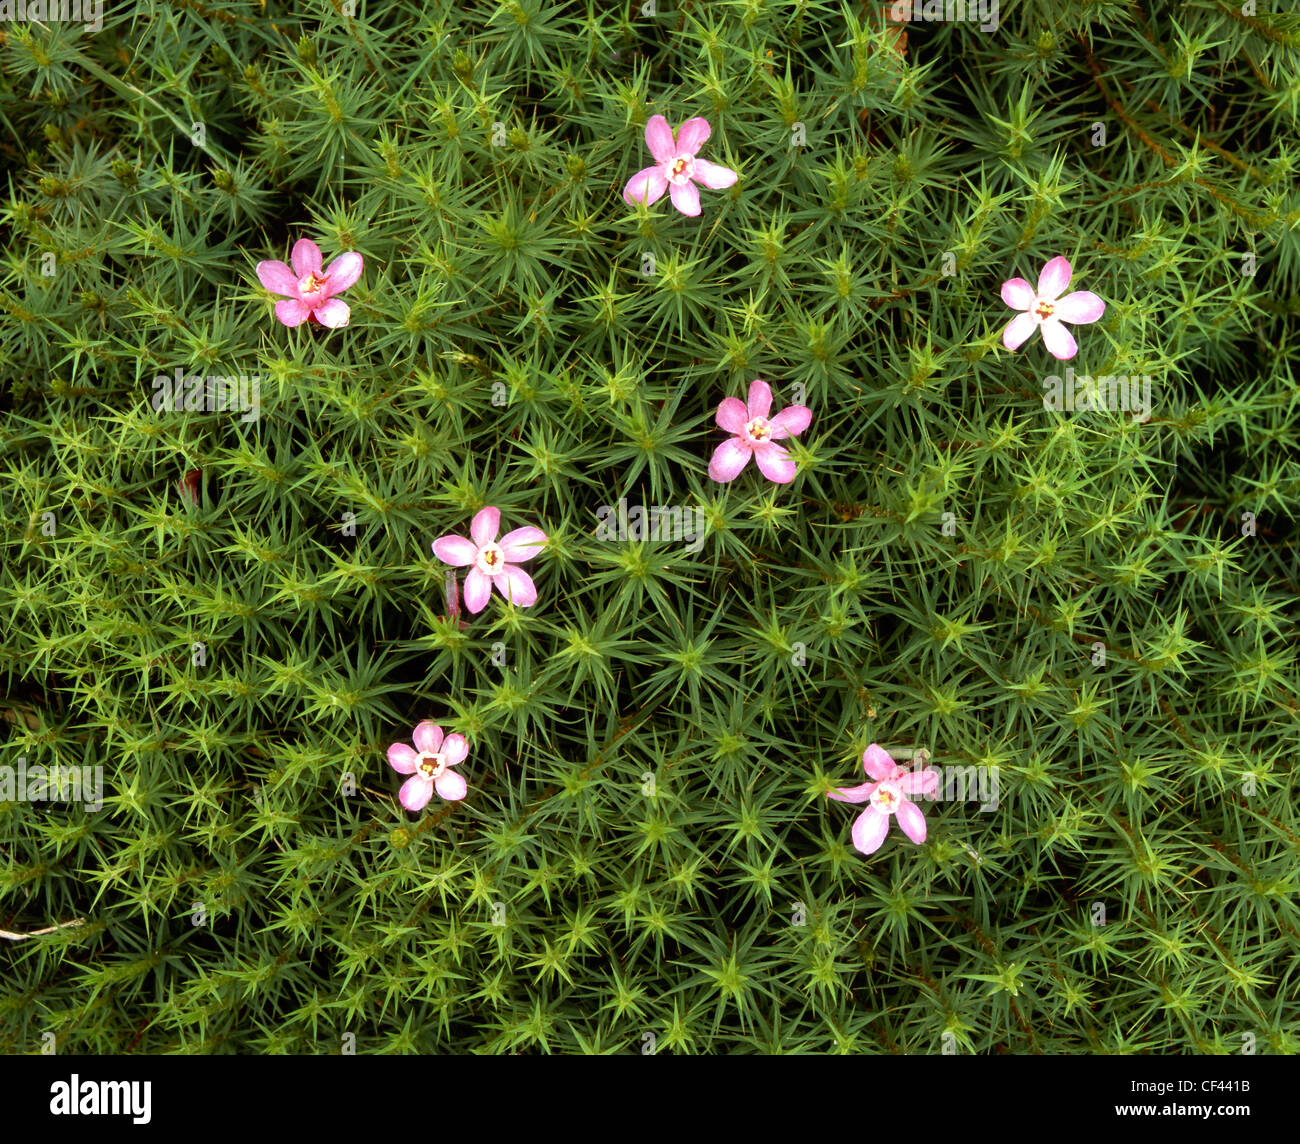 Wild flowers emerge to decorate a patch of green moss. - Stock Image